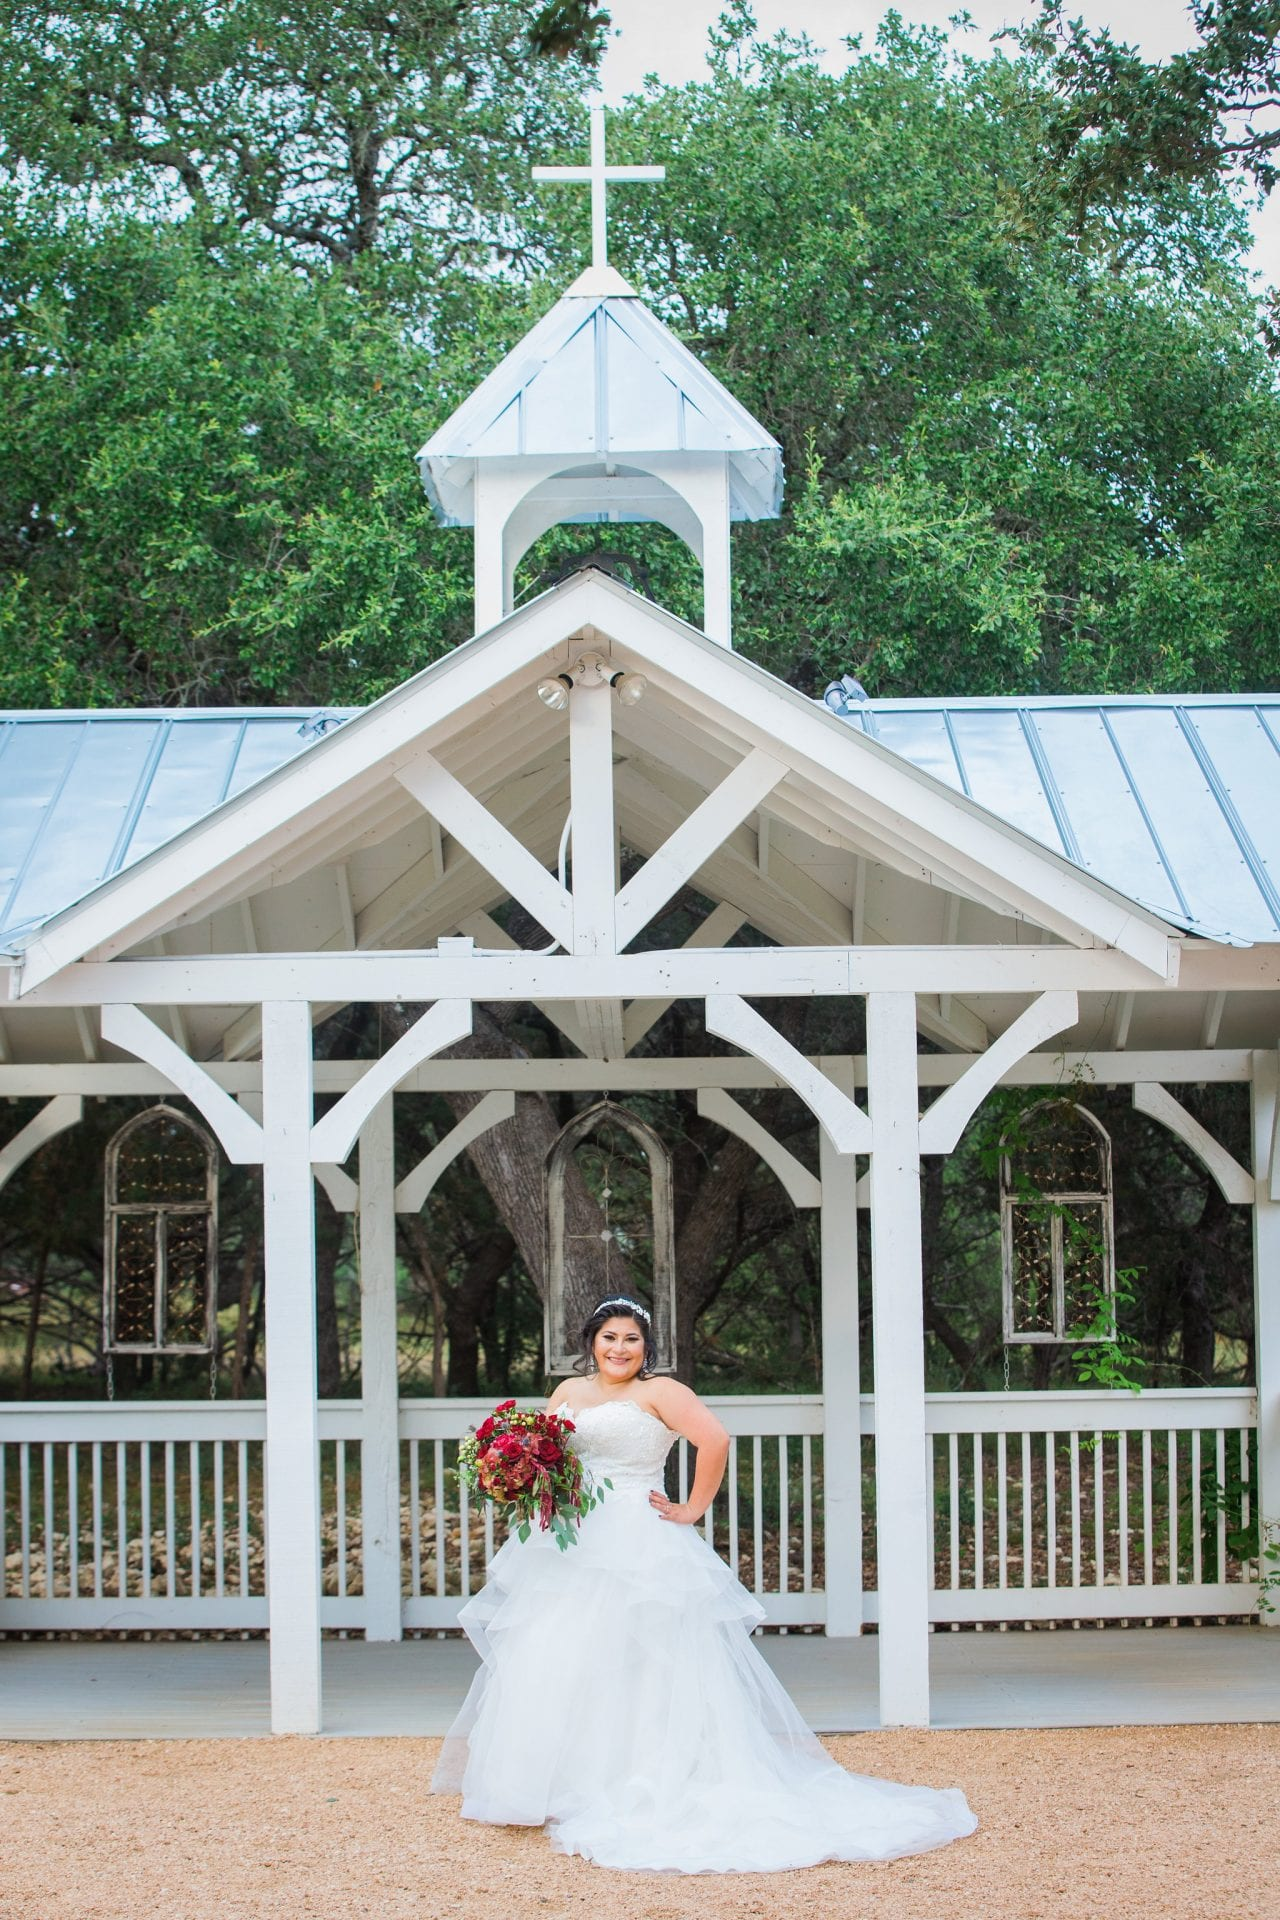 Laura's Bridals at Western Sky at the gazebo